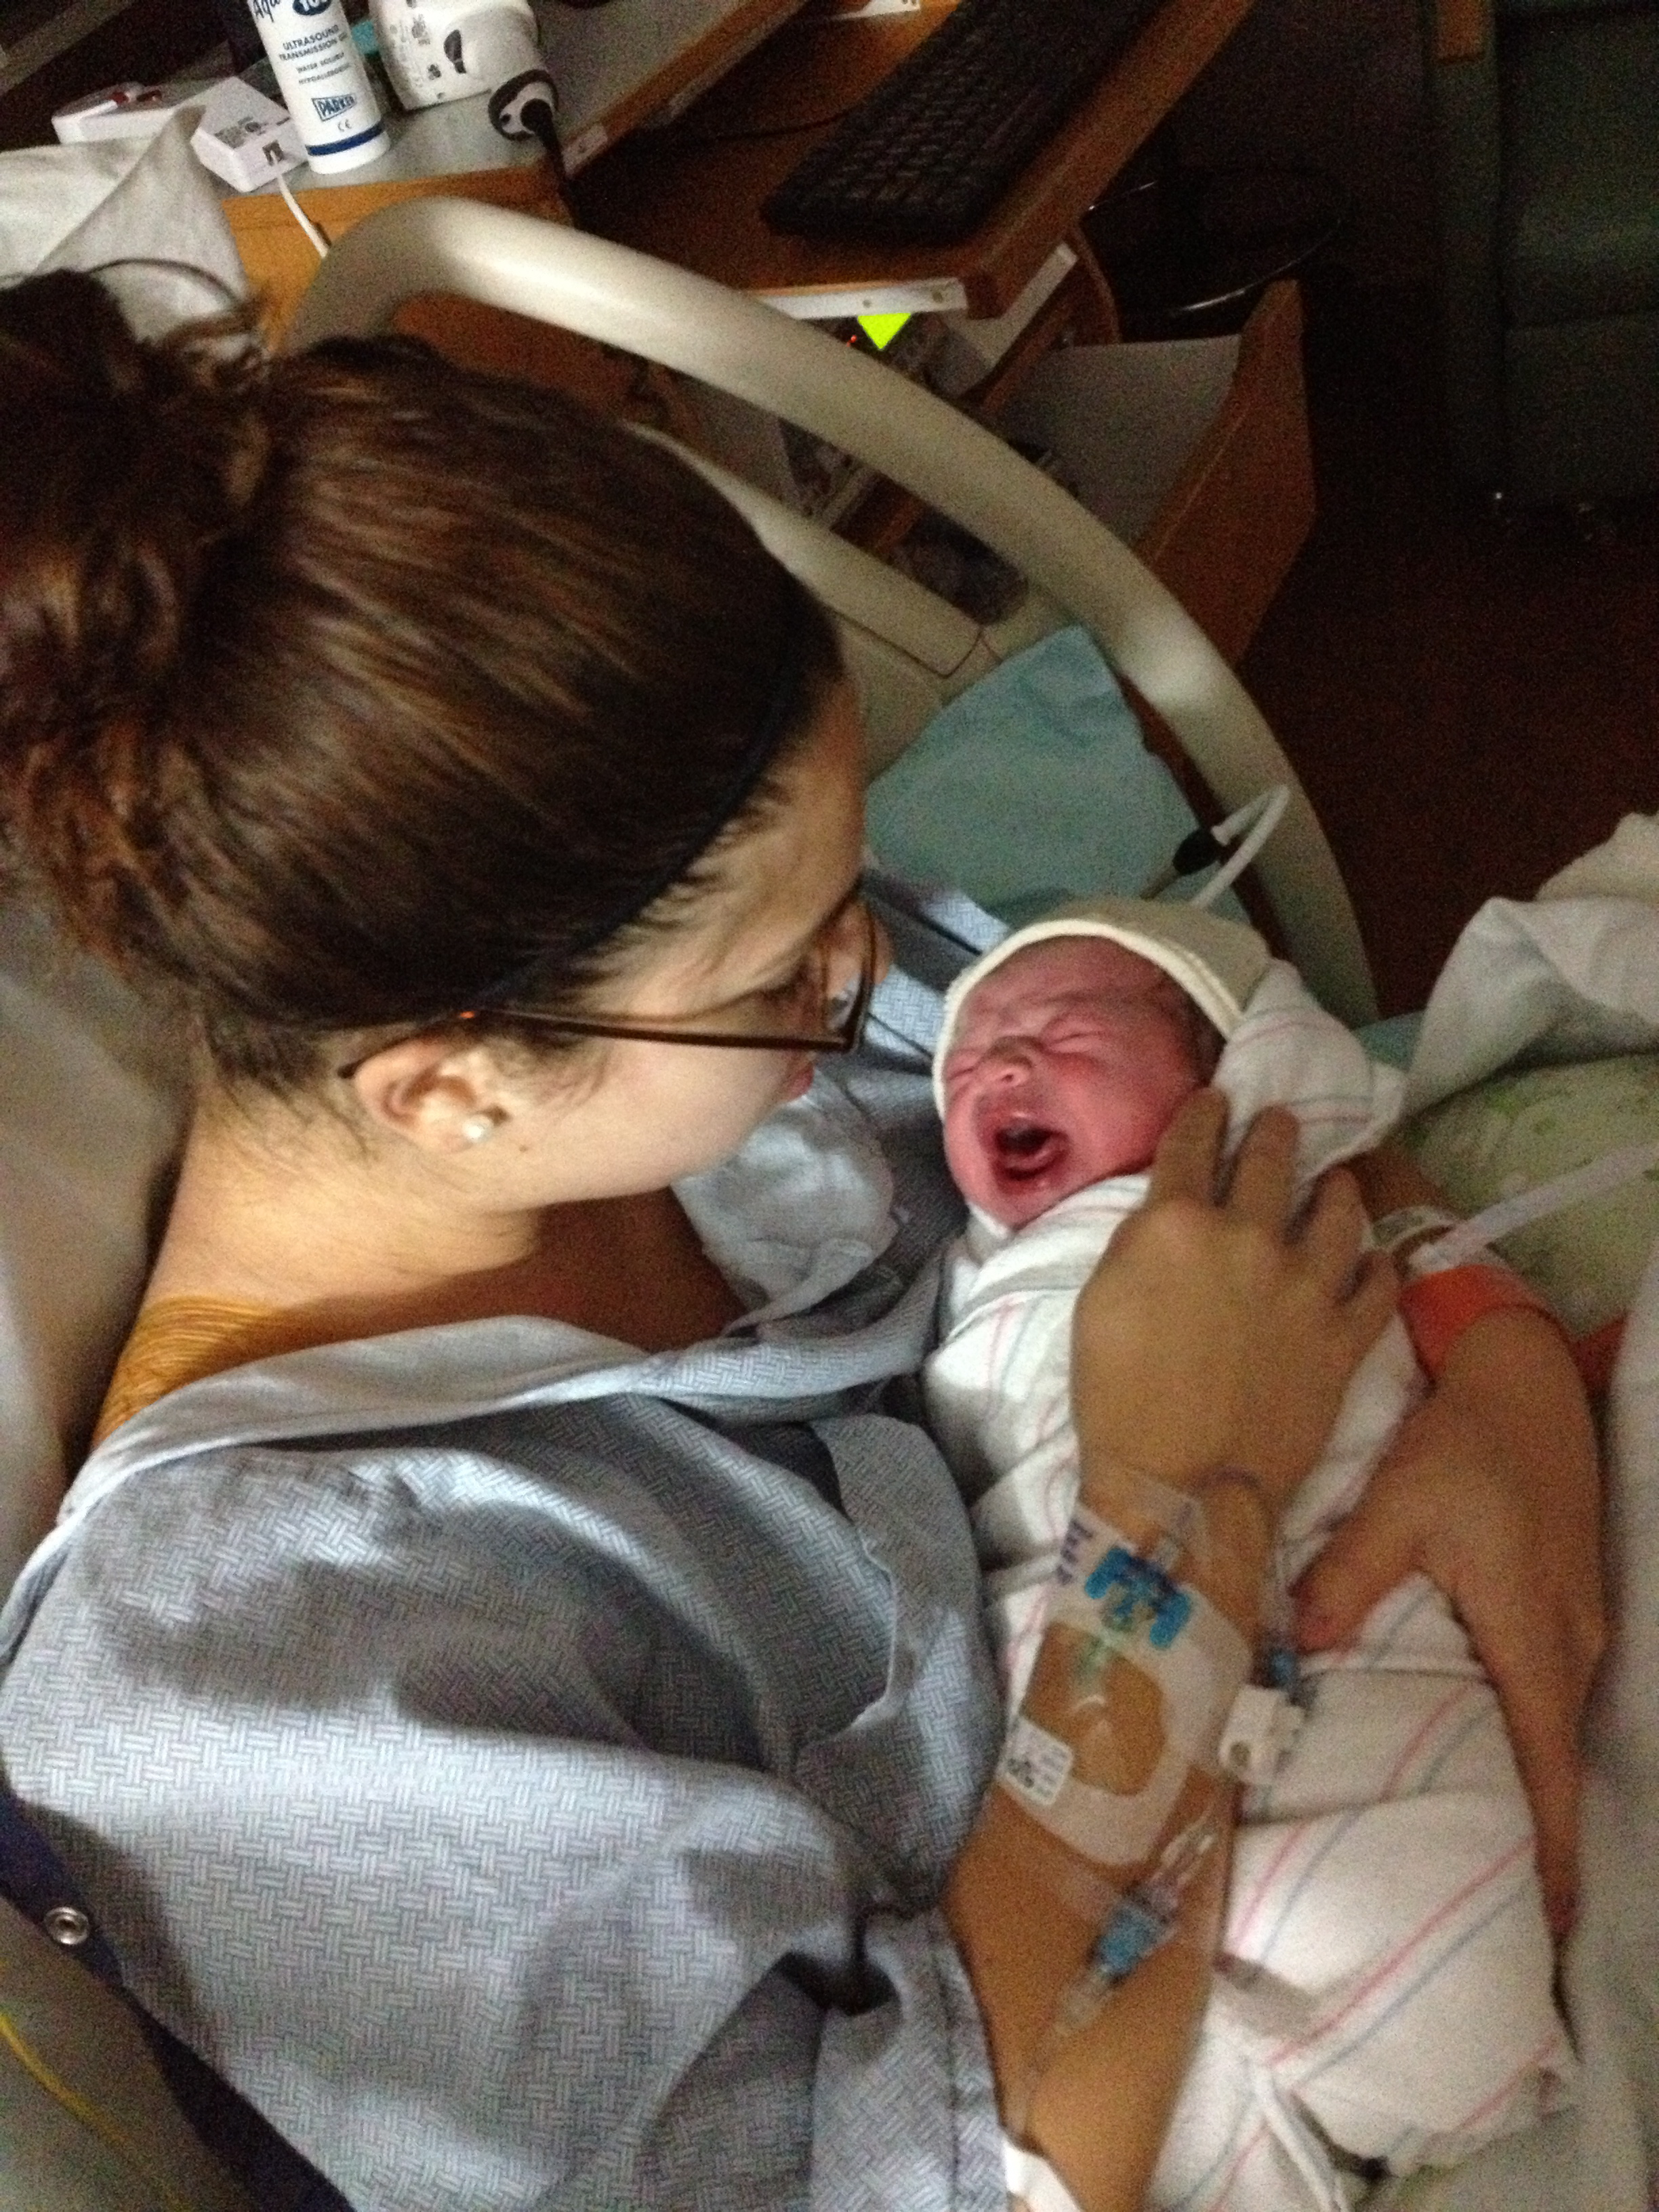 The moment when I looked down at my perfect baby and felt...absolutely nothing. The moment when...postpartum began.